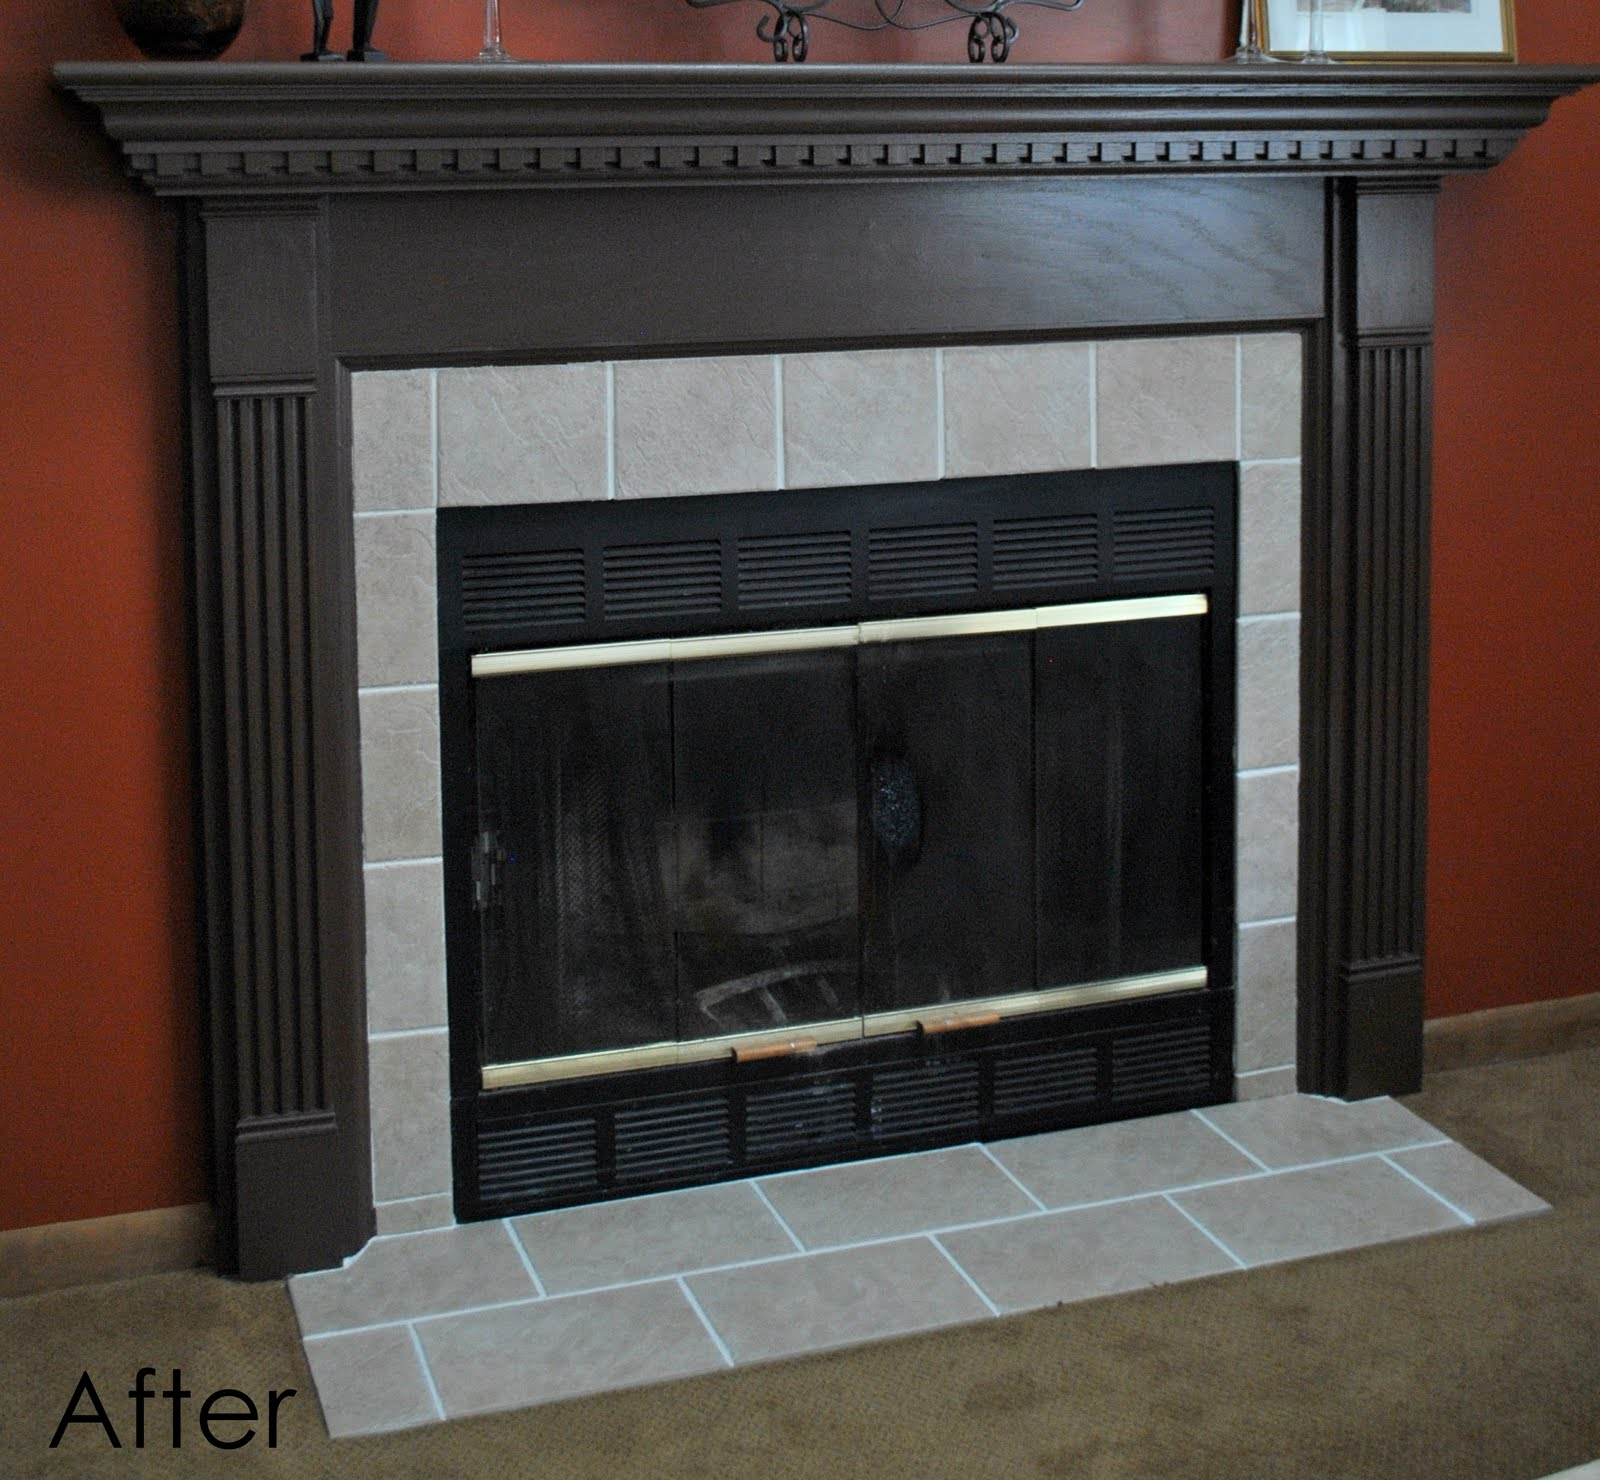 Diy fireplace surround transformation jenna burger diy fireplace surround transformation eventshaper